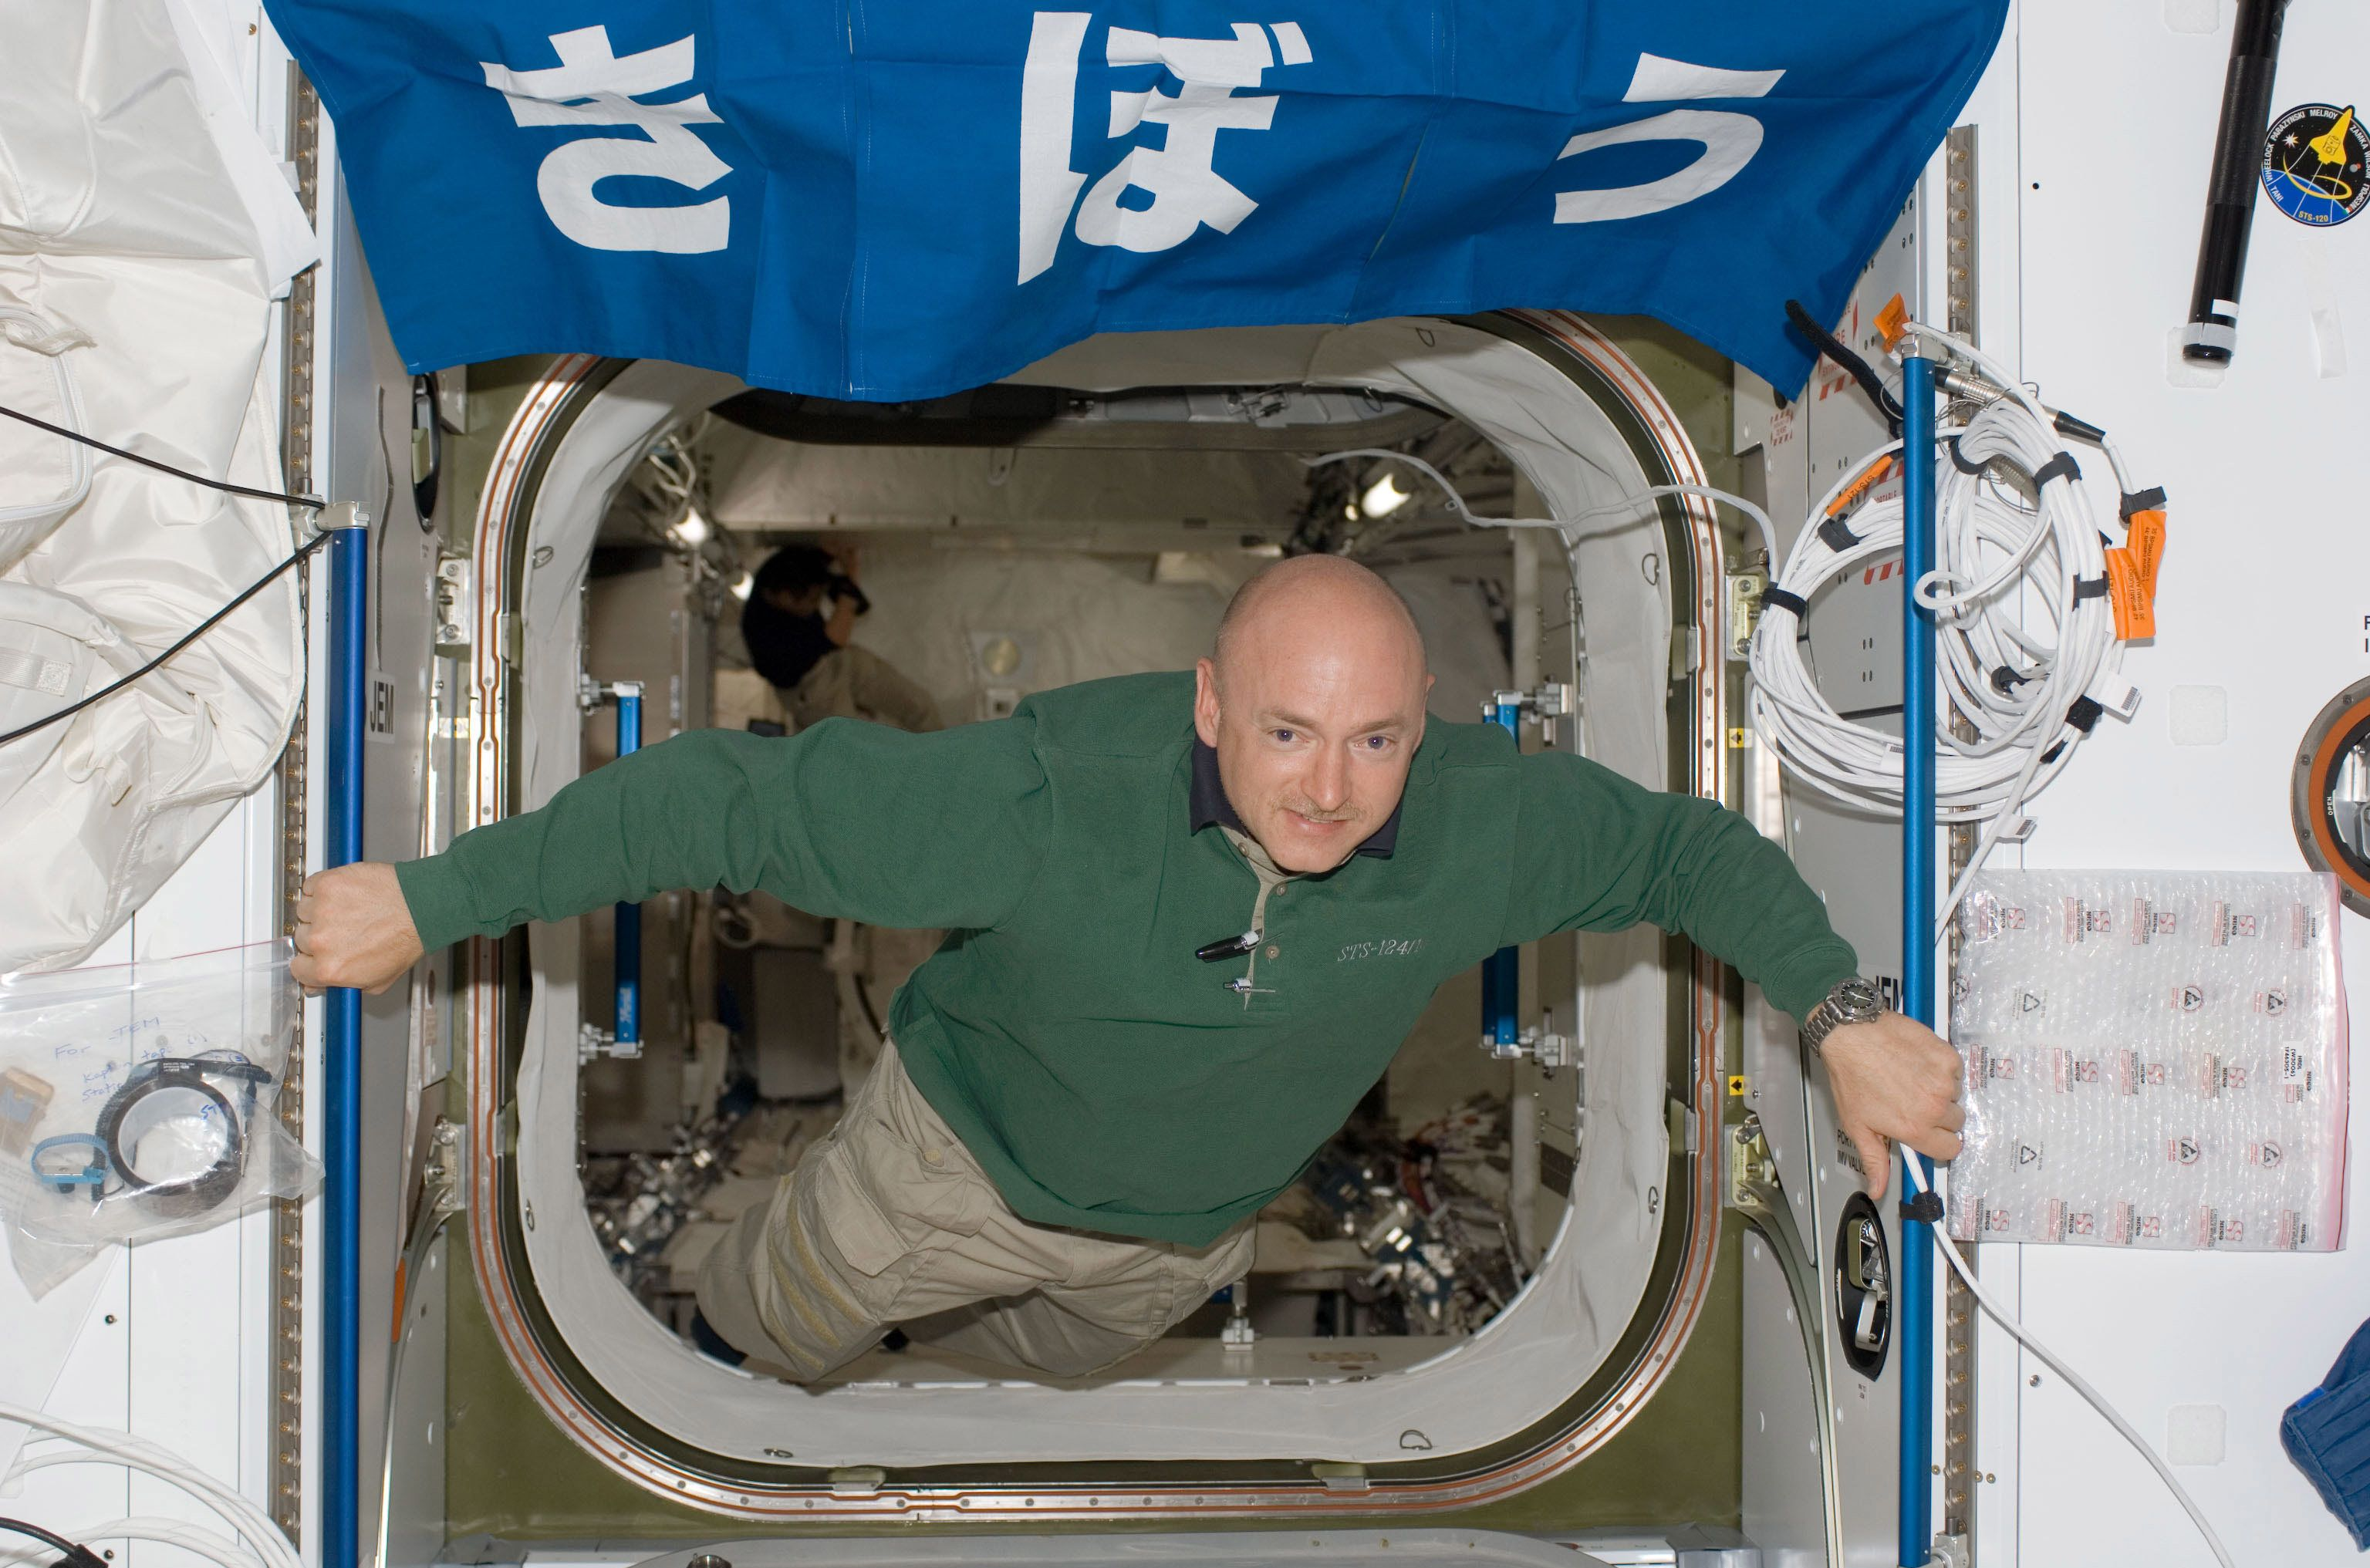 IN SPACE - JUNE 4: (FILE PHOTO) In this handout image provided by NASA, astronaut Mark E. Kelly, STS-124 commander, floats in the hatch between the Harmony node and the newly installed Kibo Japanese Pressurized Module (JPM) of the International Space Station while Space Shuttle Discovery is docked with the station June 4, 2008 in space. Mark E. Kelly's wife, U.S. Rep. Gabrielle Giffords (D-AZ) was shot in the head at a public event entitled 'Congress on your Corner' when a gunman opened fire outside a Safeway grocery store January 8, 2011 in Tucson, Arizona. It was reported that eighteen people were shot, including members of Giffords' staff, and six were killed, including one young child. (Photo by NASA via Getty Images)